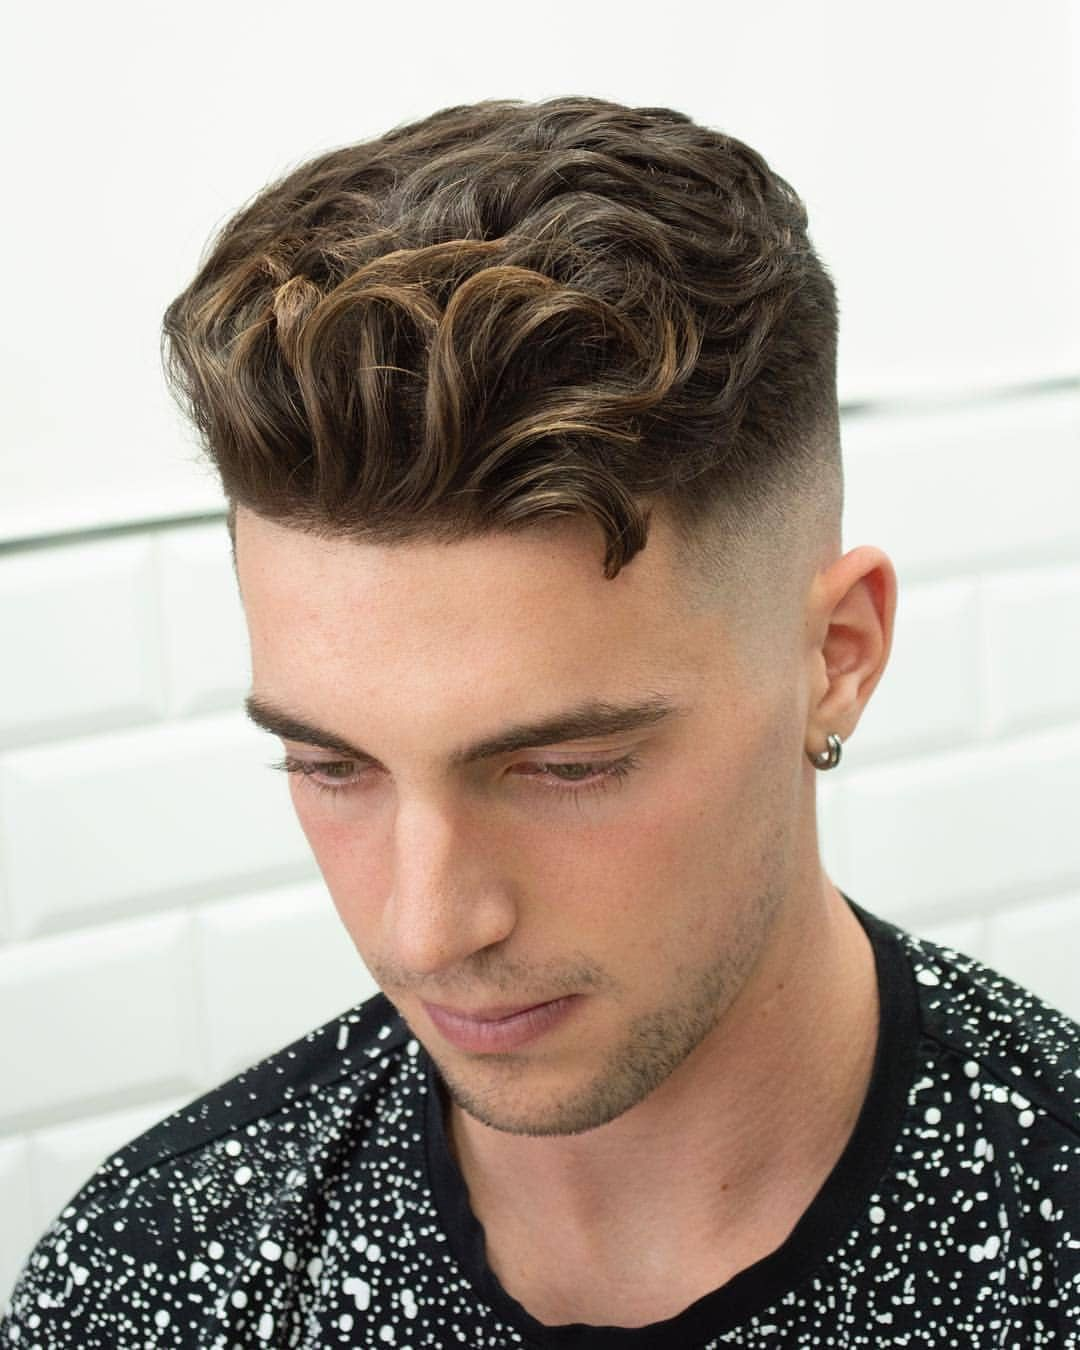 15 Quiff Hairstyles We Absolutely Love Men S Hairstyles Wavy Hair Men Undercut Hairstyles Curly Undercut